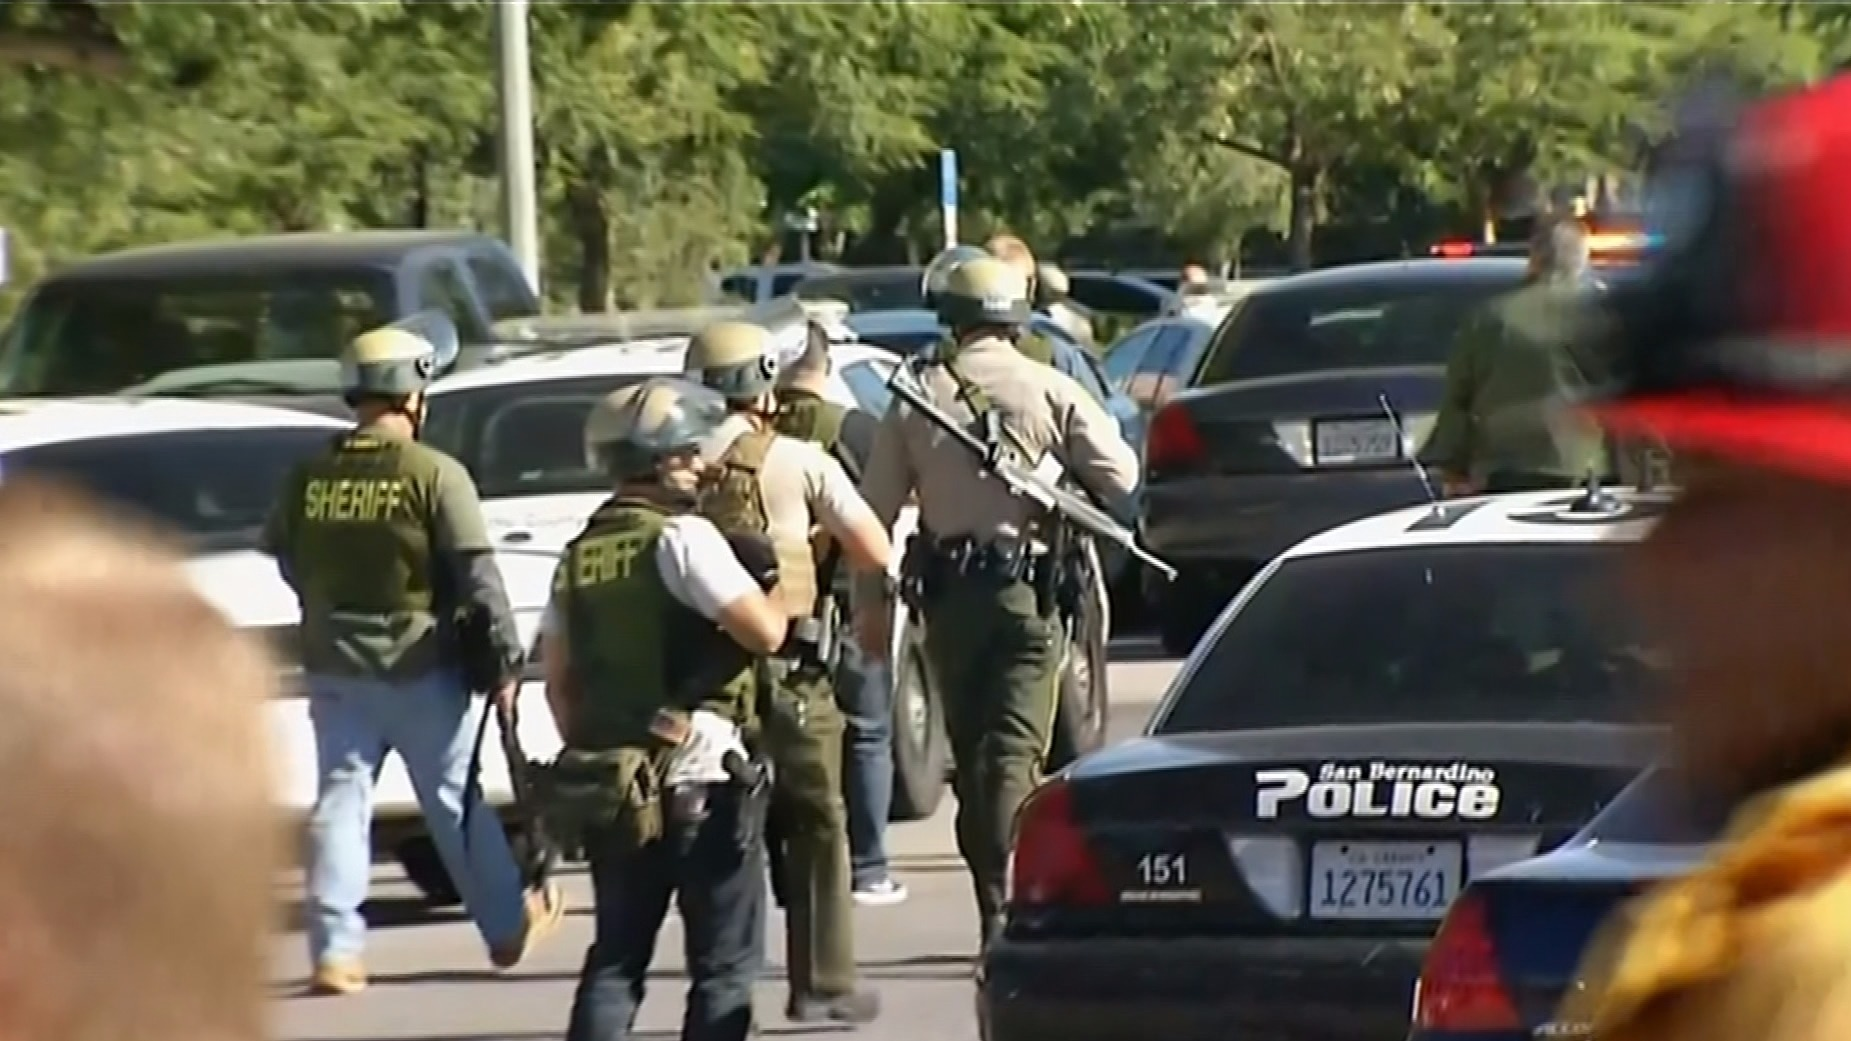 Shooting Update: California Shooting Suspects 'in Military-style Attire